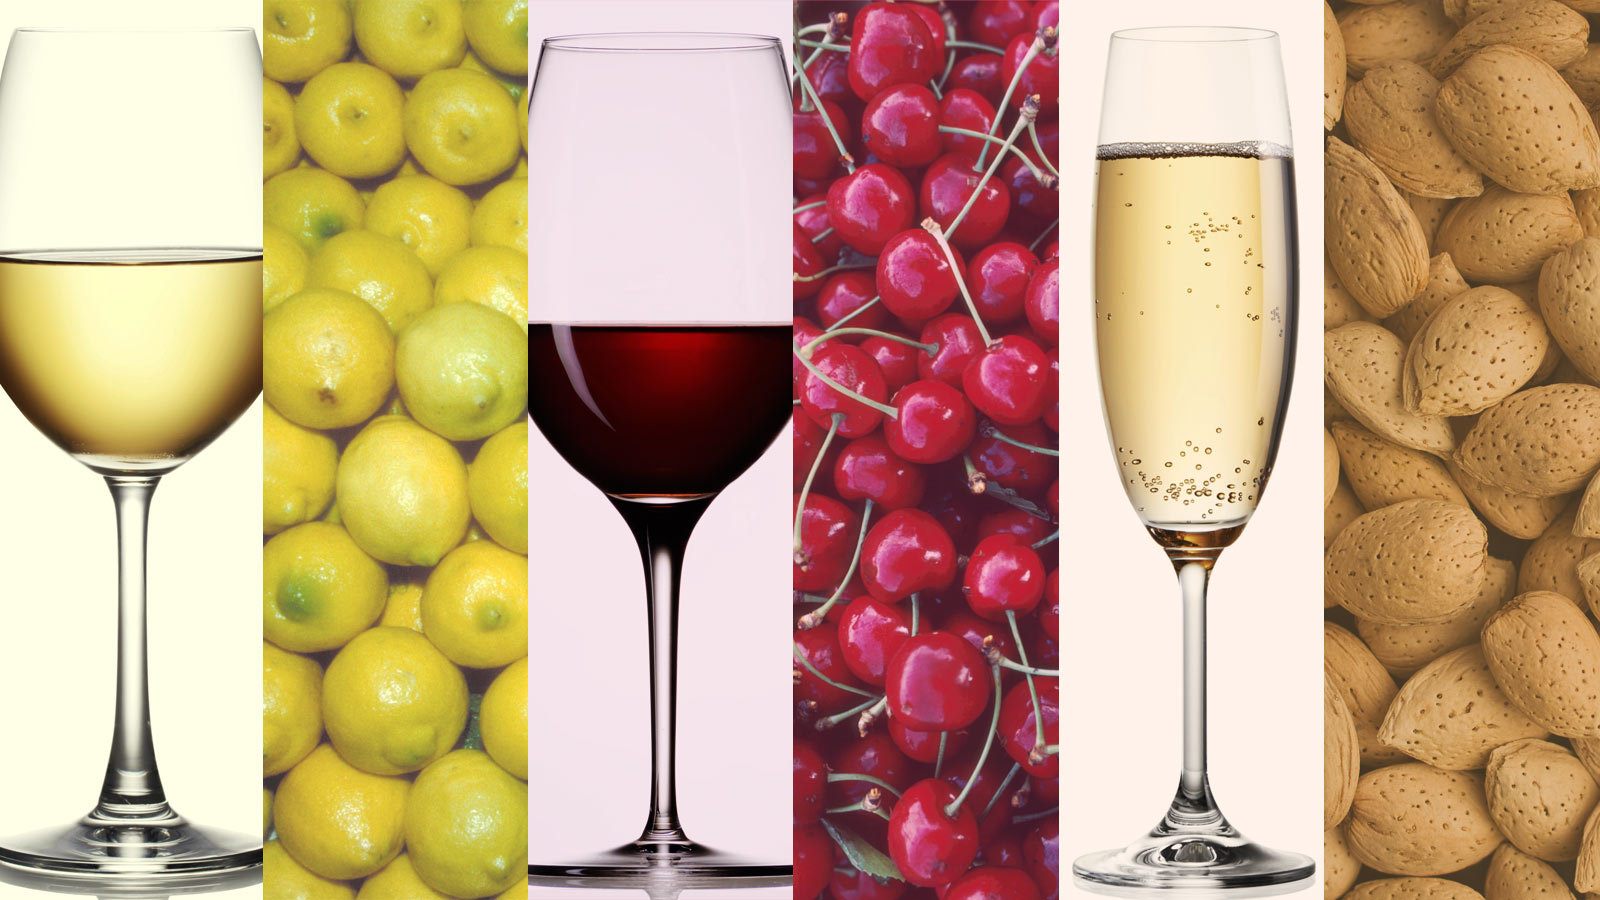 economic analysis of the wine industry Discover all relevant statistics on the wine market/industry and wine consumption in the united states now on statistacom  we offer customized research & analysis services.